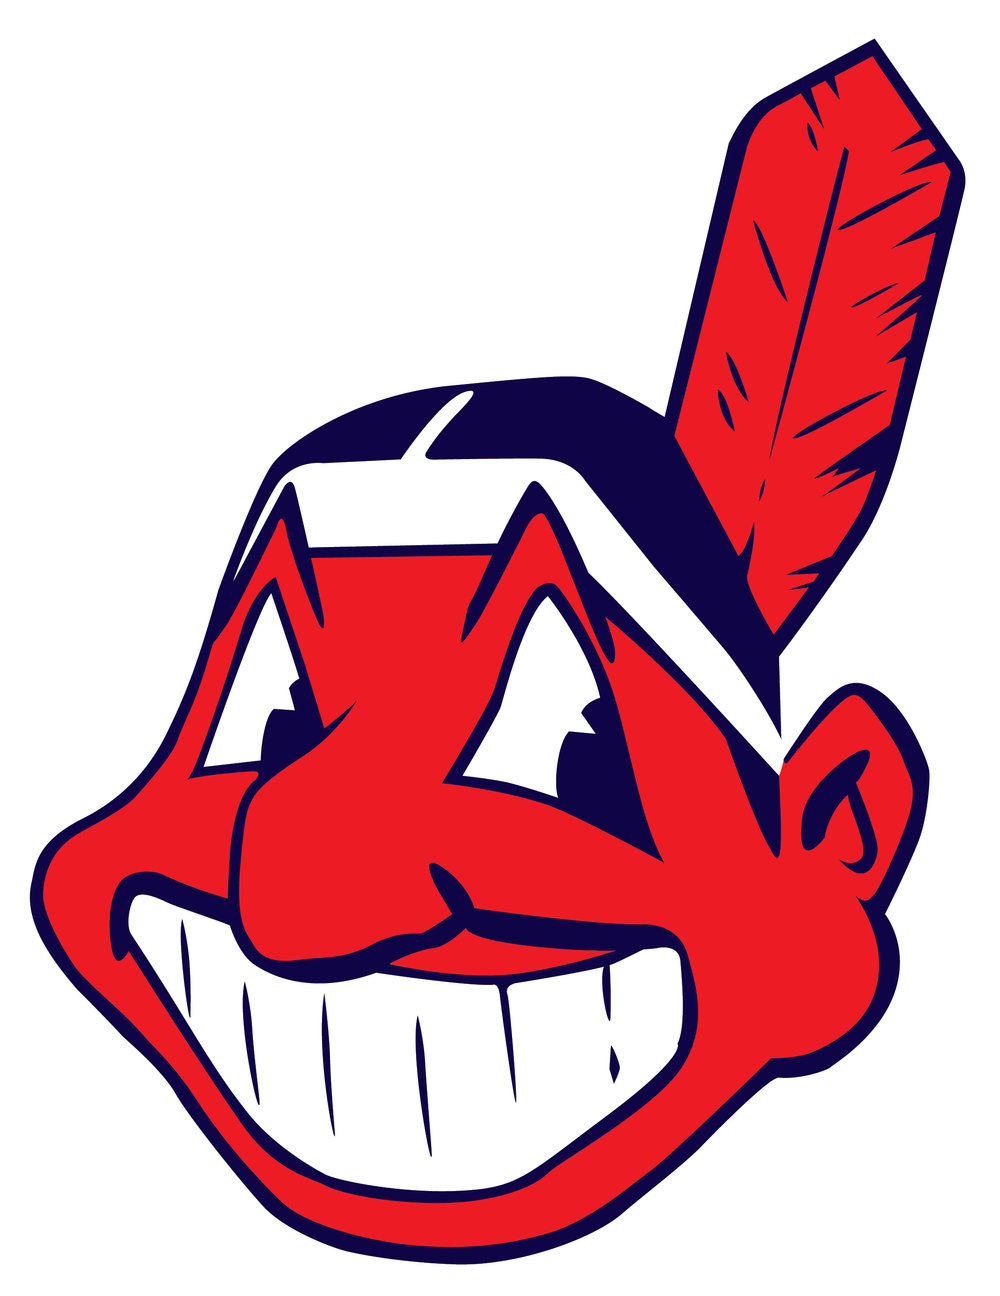 Fig. 6: 'Chief Wahoo' logo of the Cleveland Indians, 1951-present, designed by Walter Goldbach in 1947, copyright Cleveland Indians.